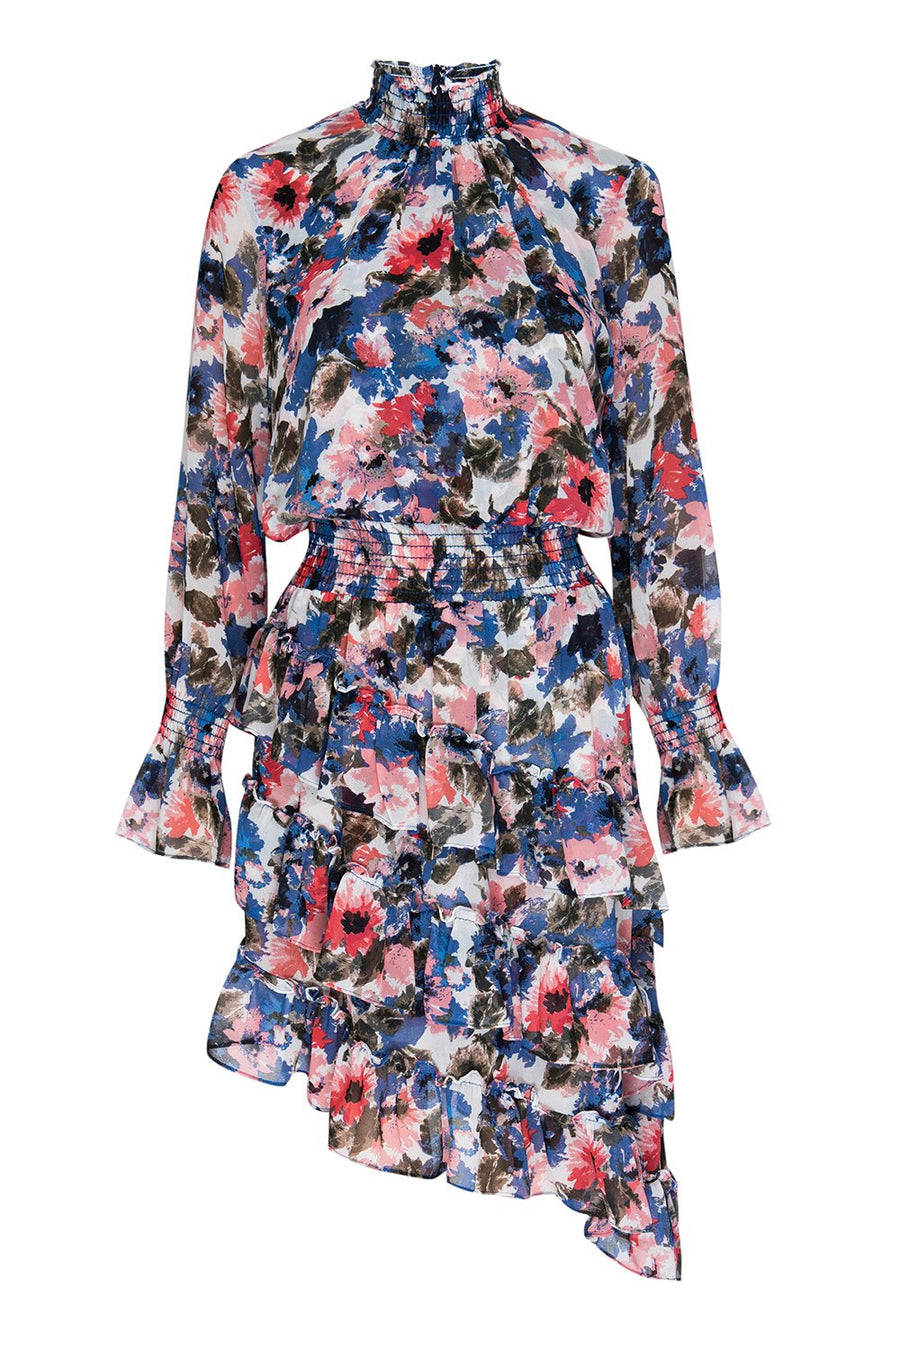 Misa Savanna Dress in Floral